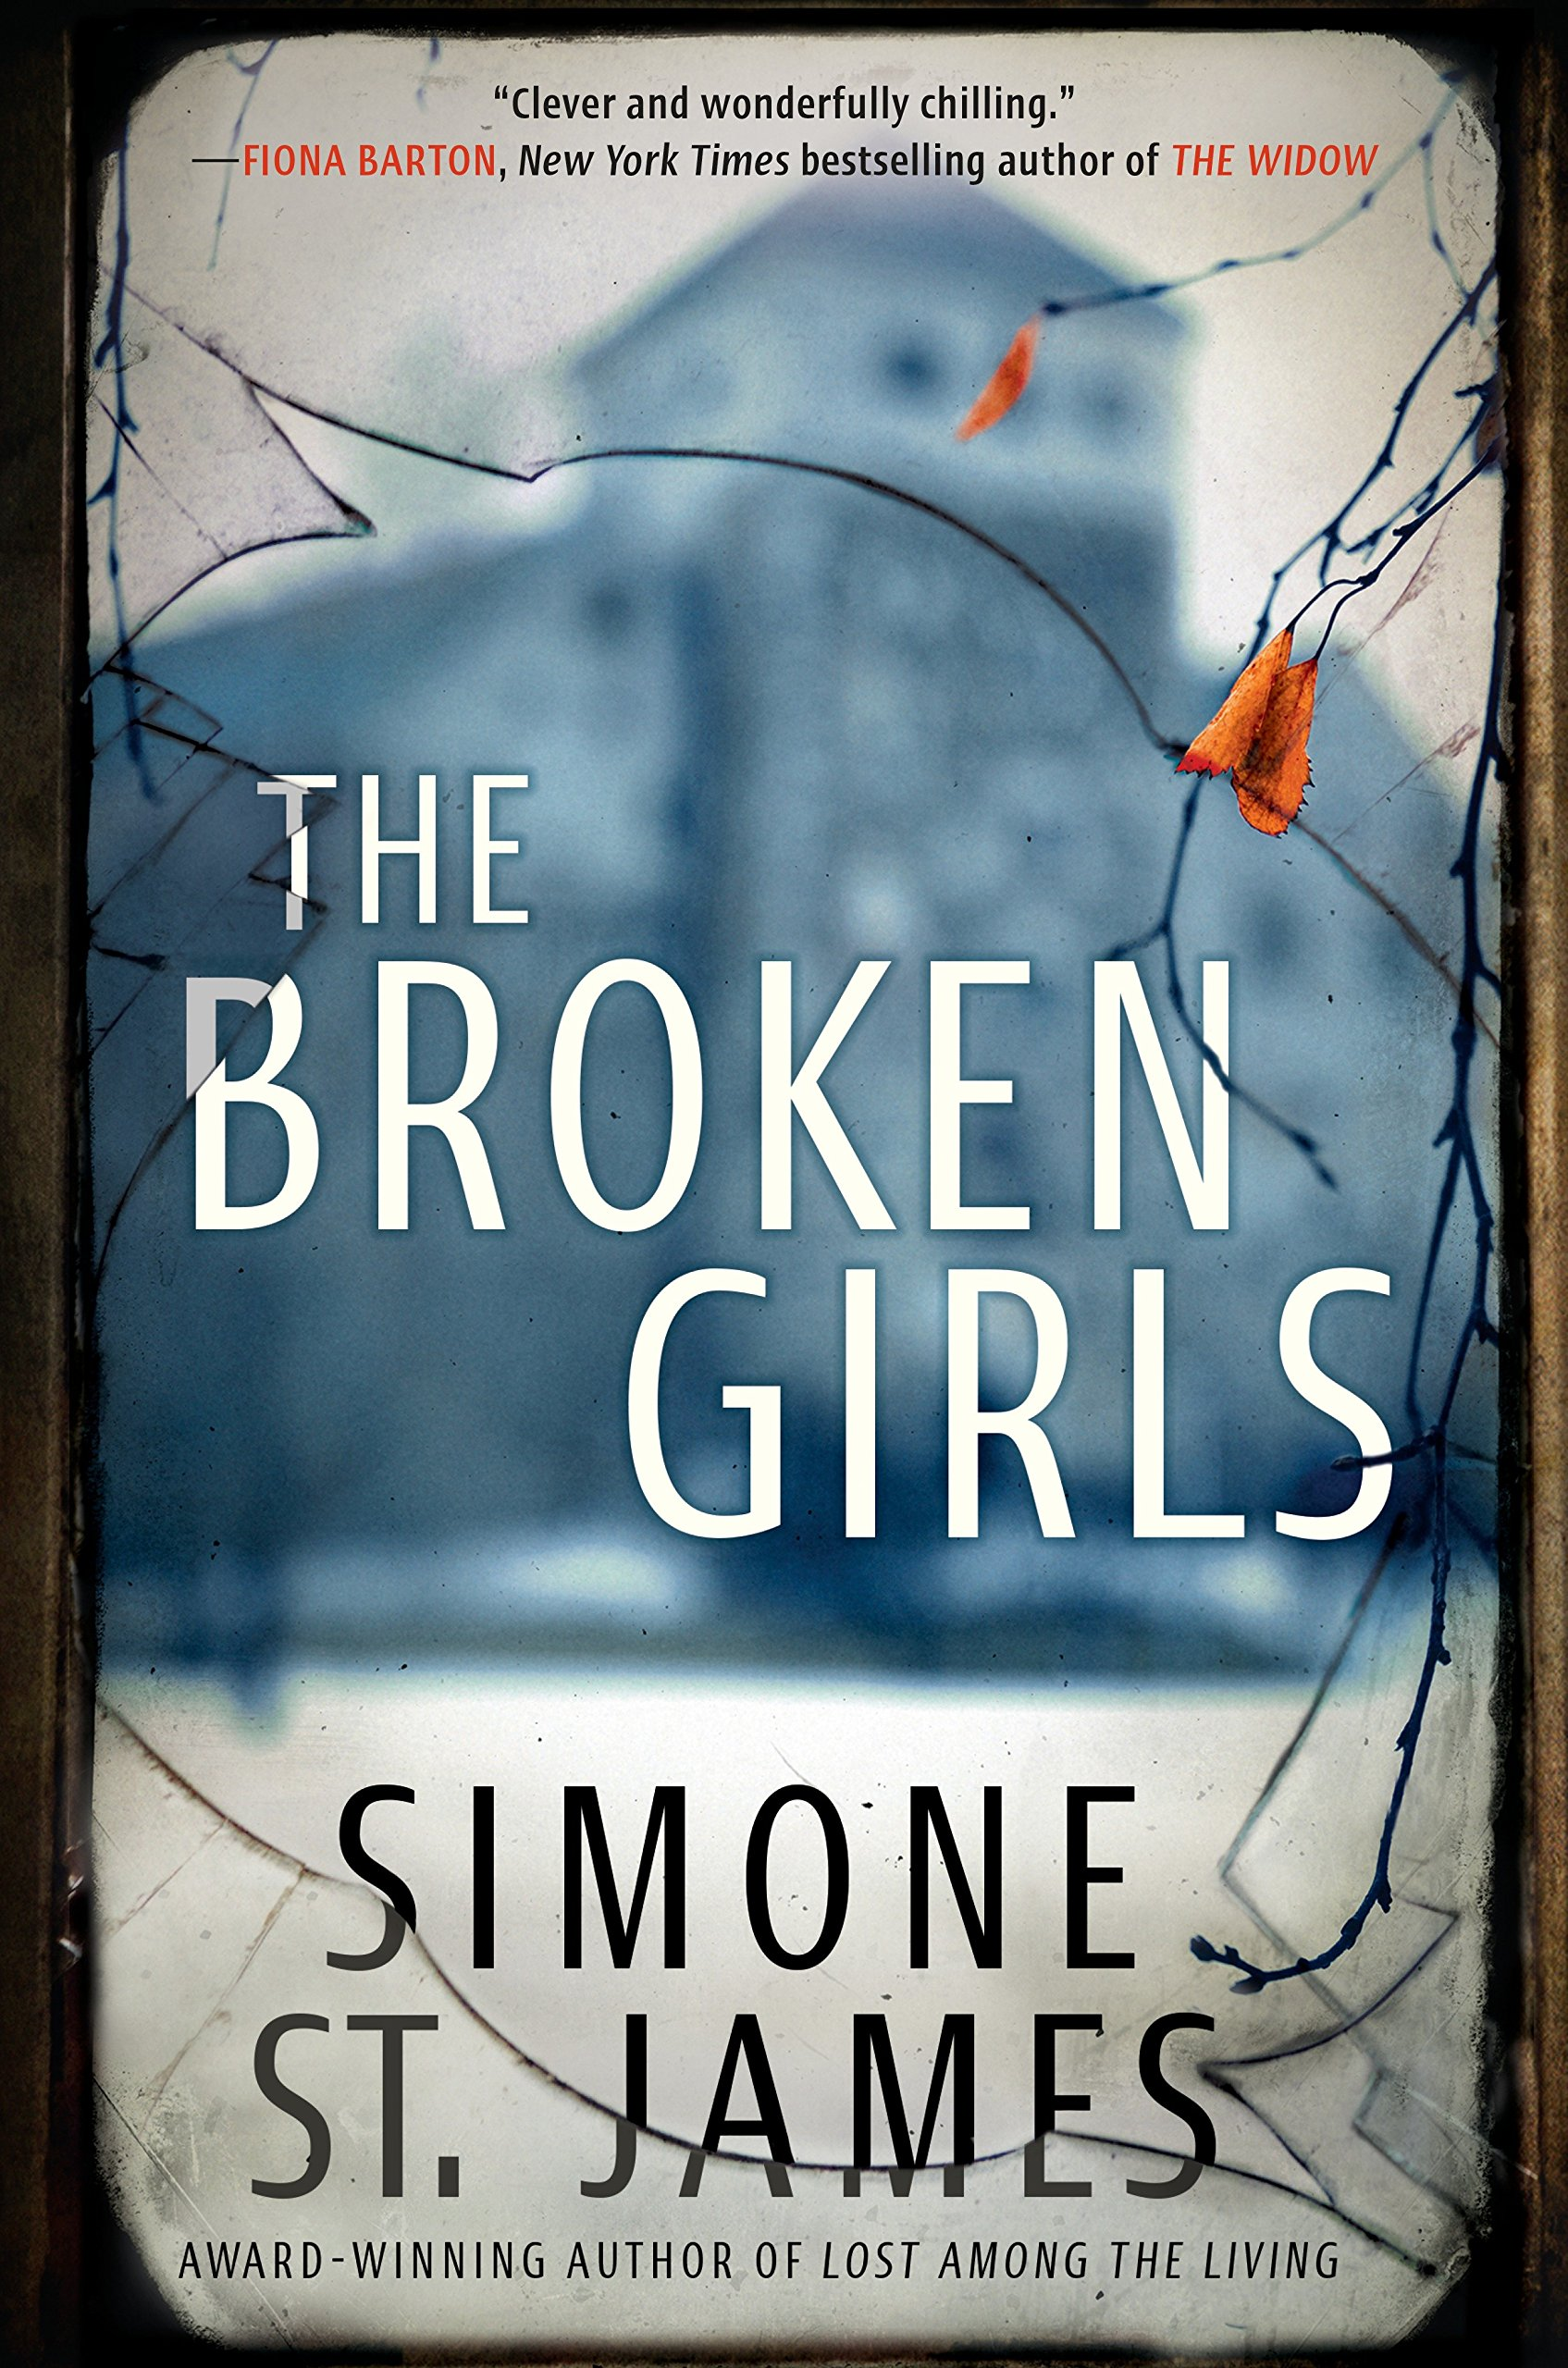 Image result for the broken girls simone st. james